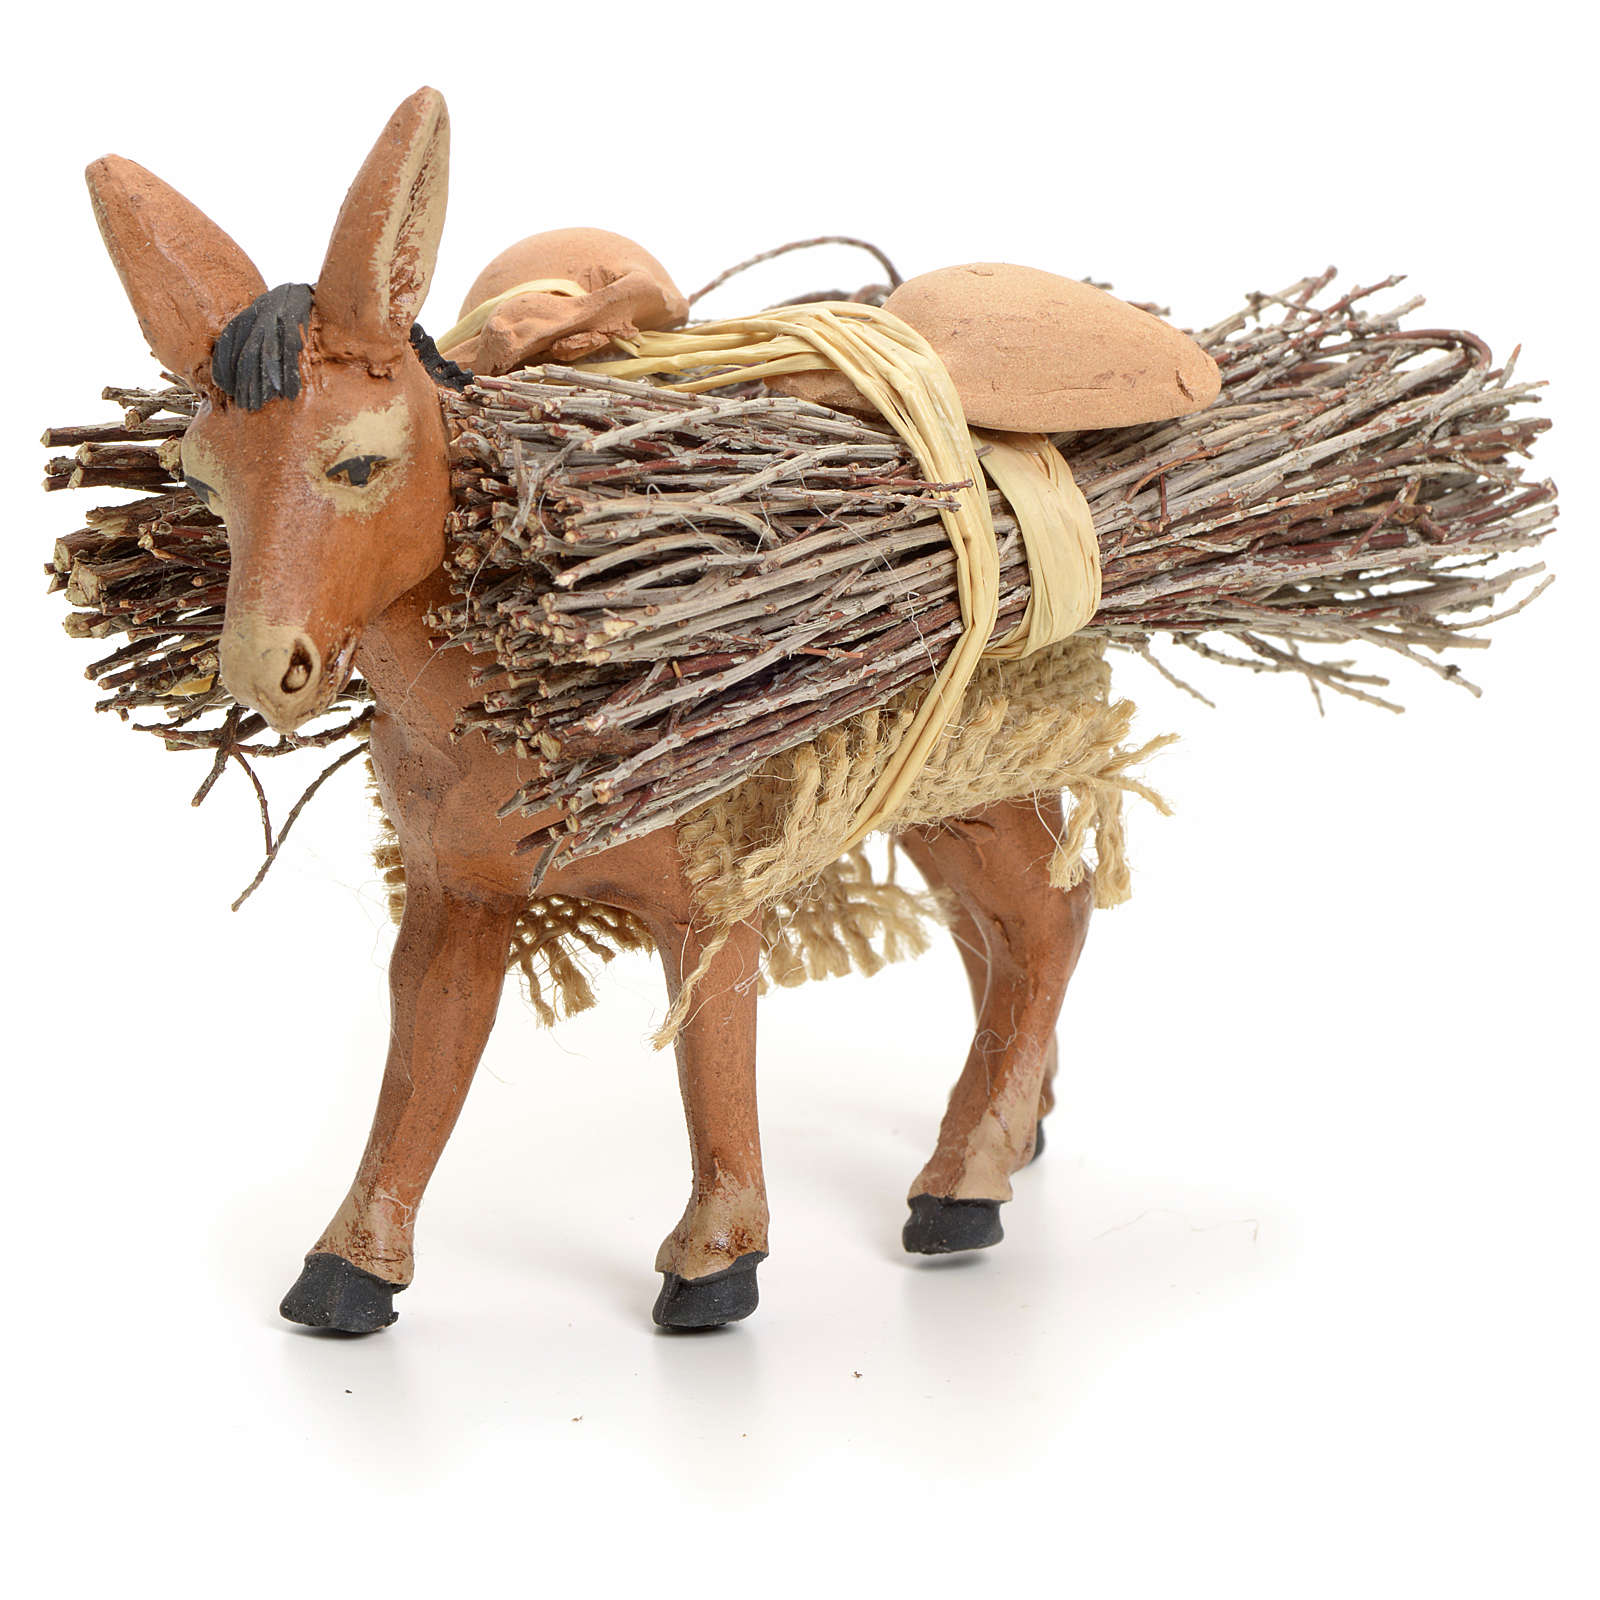 Brown donkey standing with wood, Neapolitan nativity 8cm 4